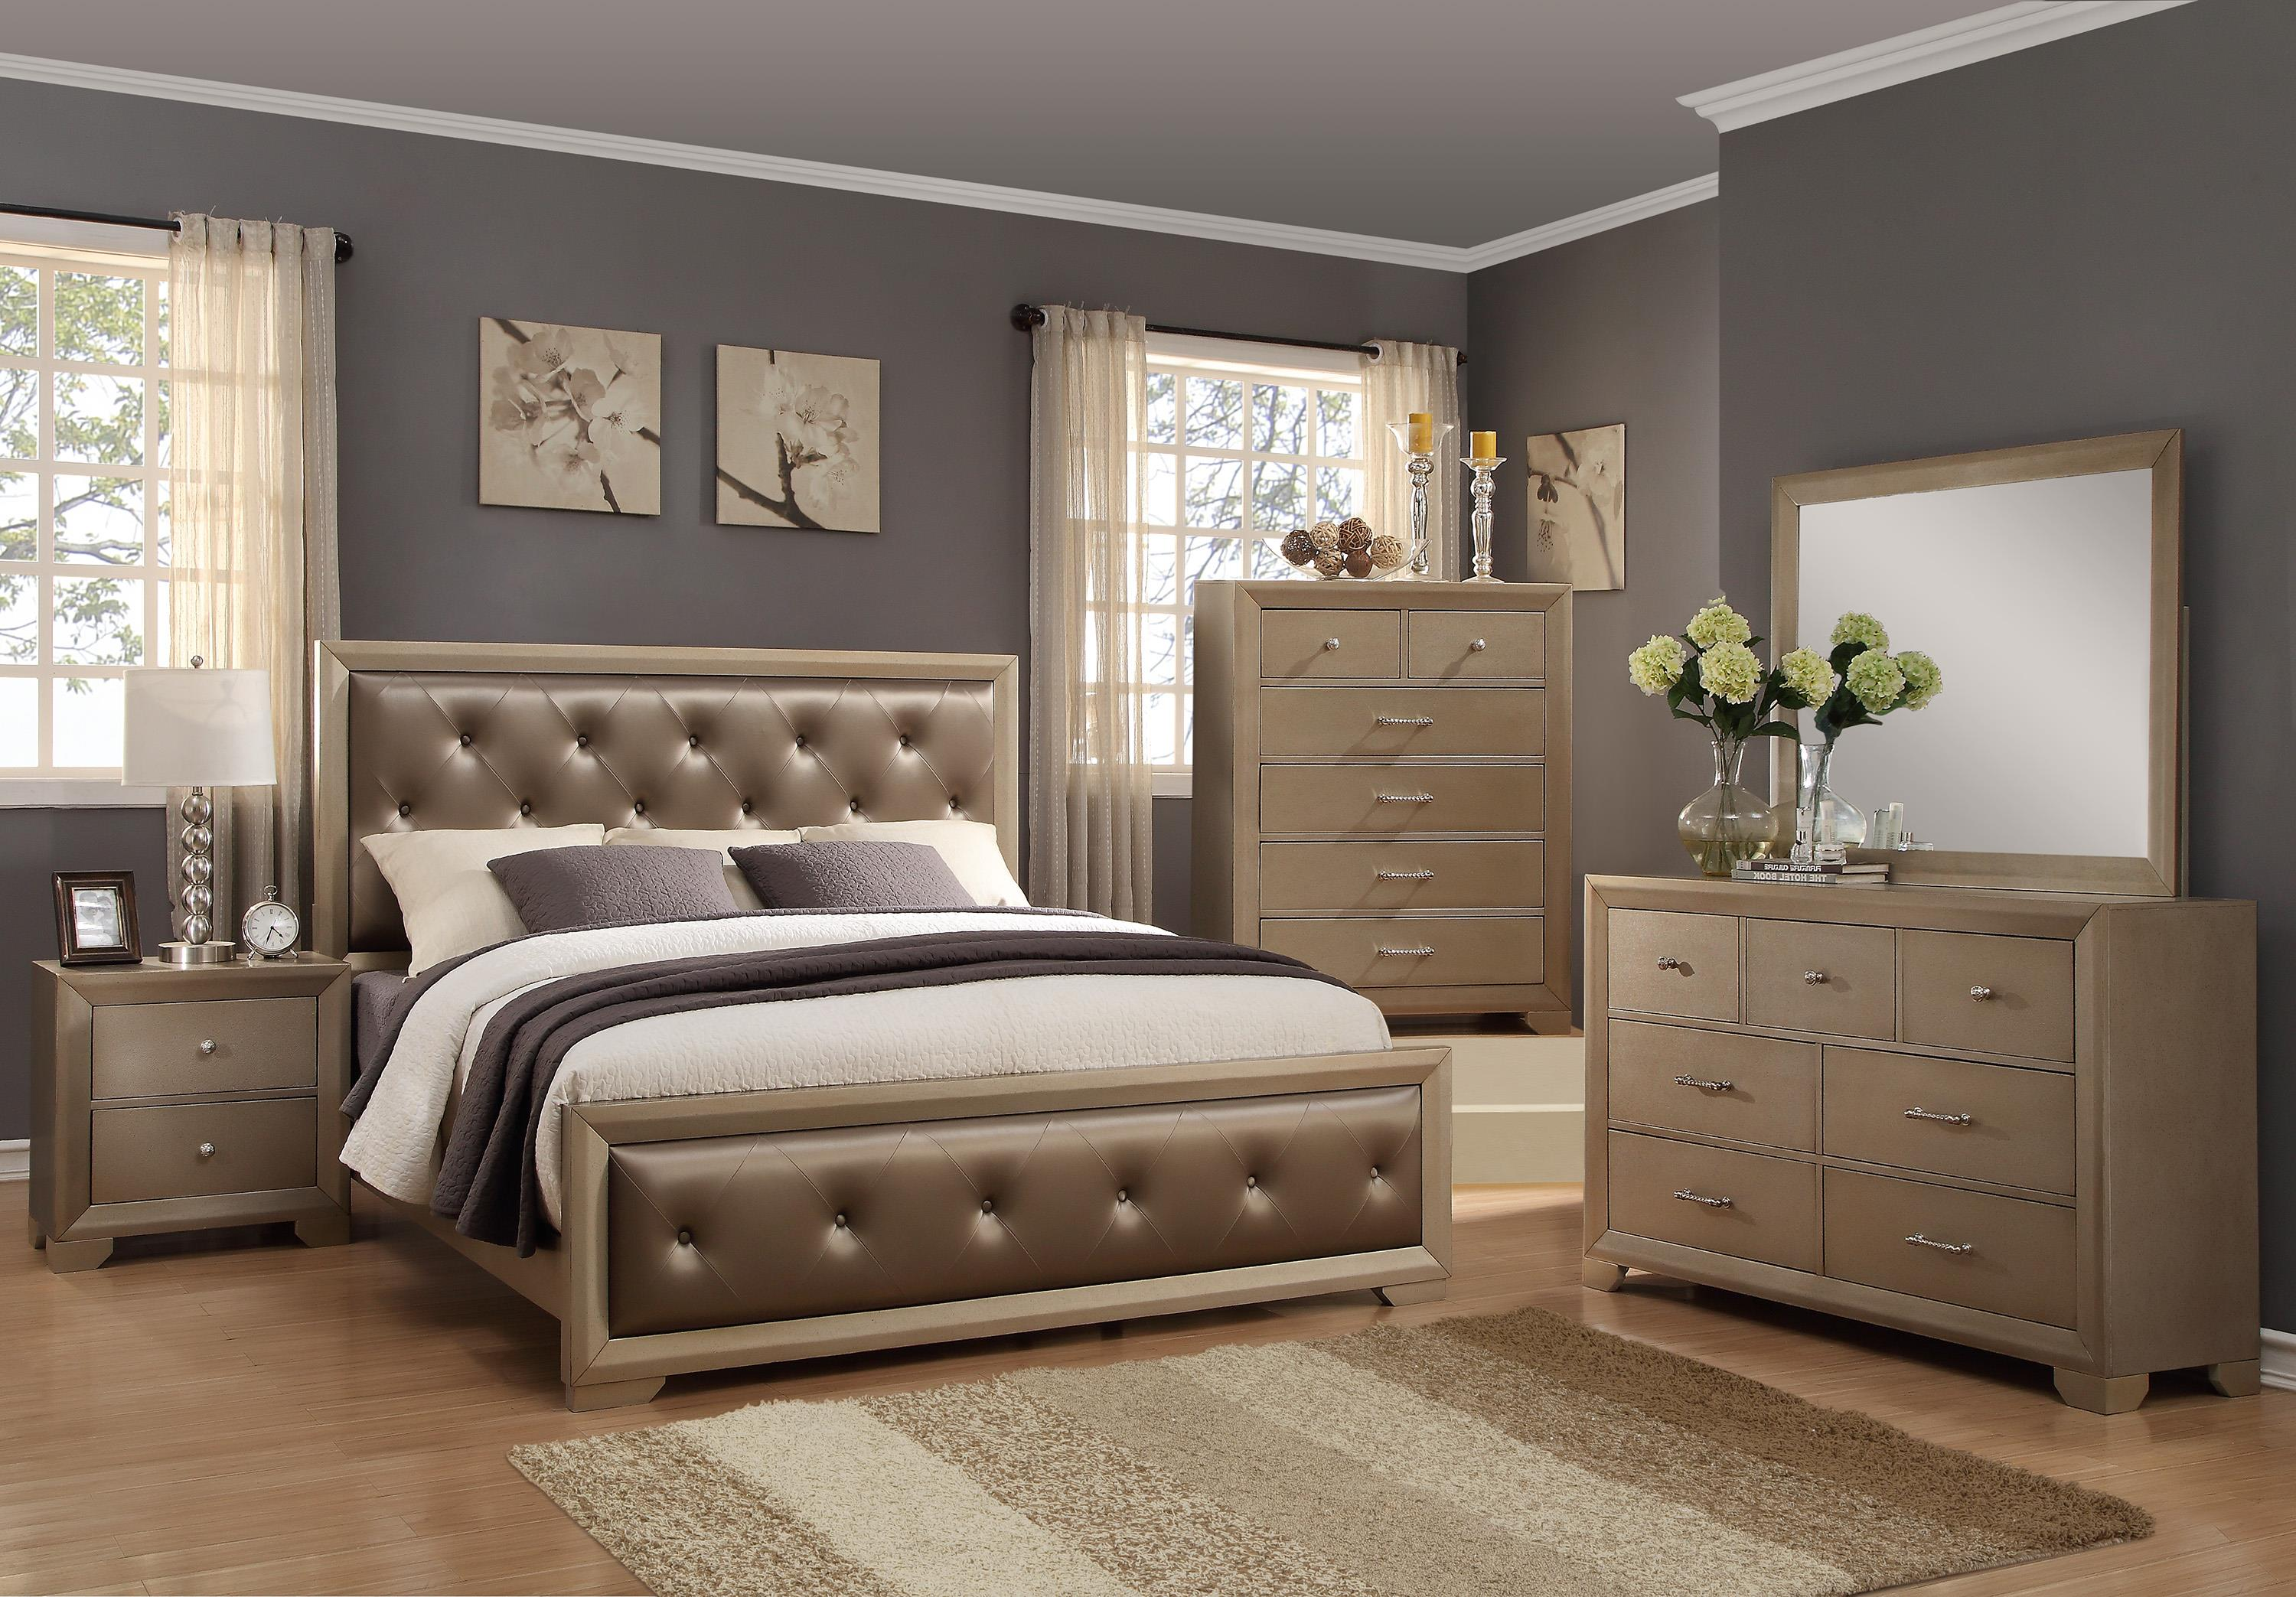 Crown Mark Fontaine Cal King Bedroom Group - Item Number: B1700 CK Bedroom Group 1